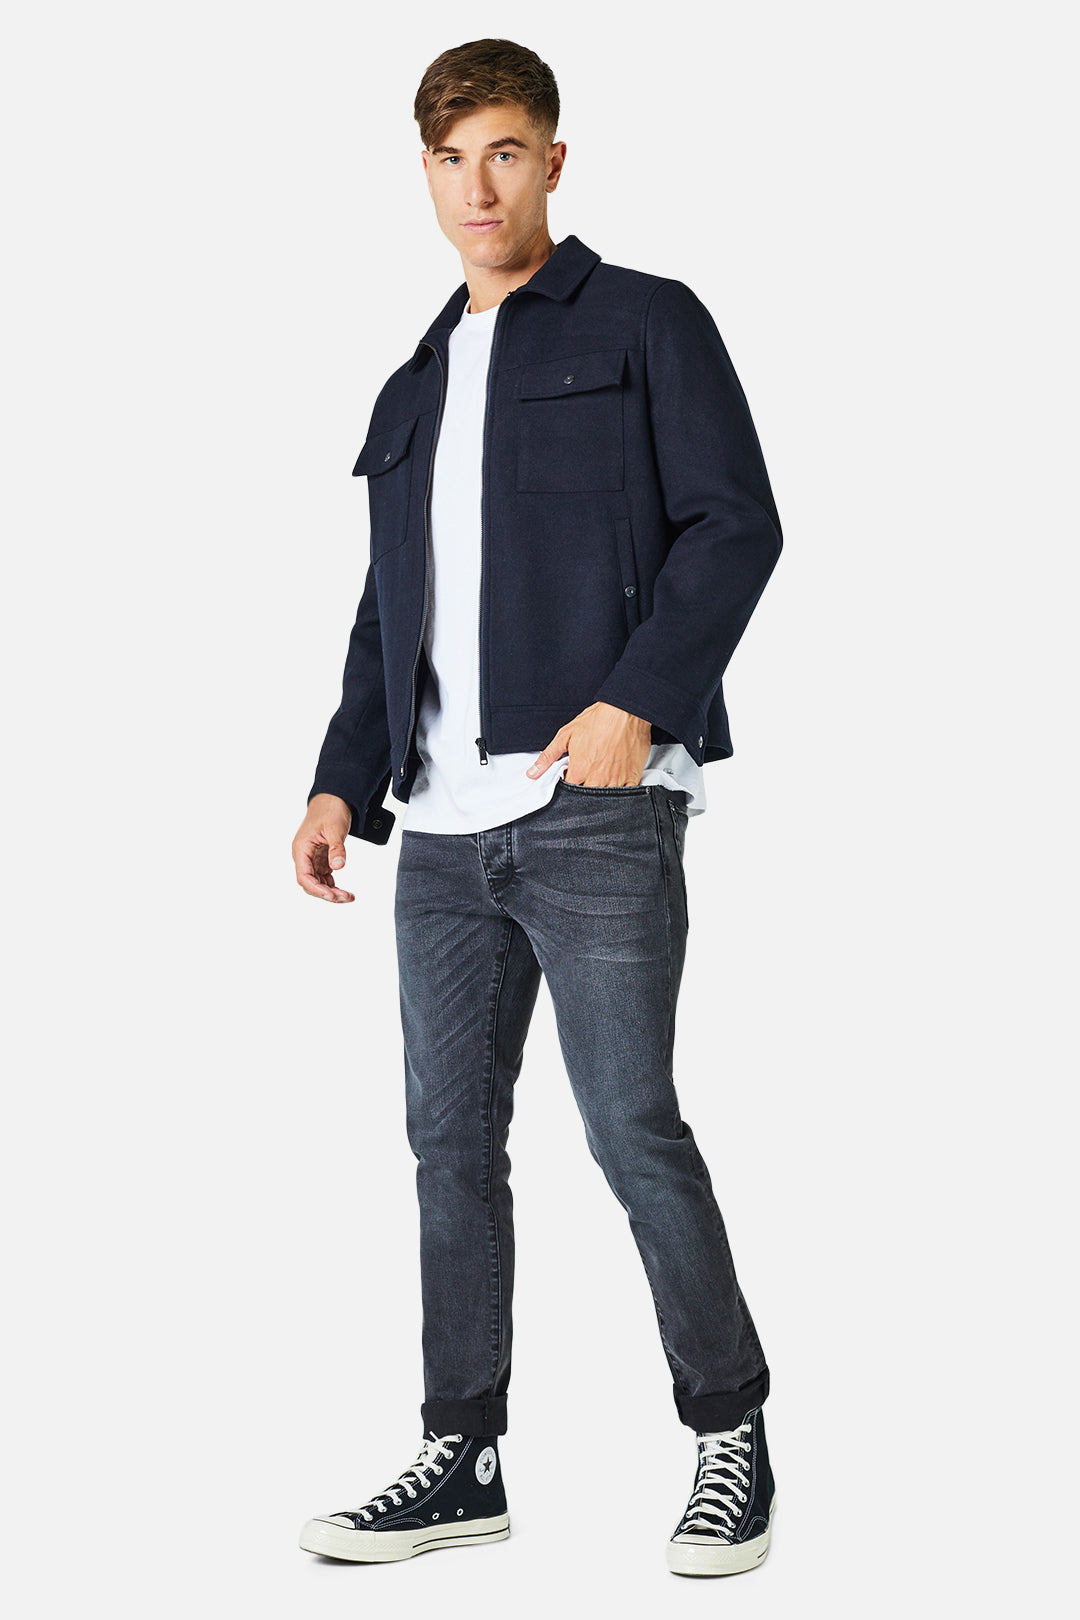 The Bristol Jacket - Dark Navy